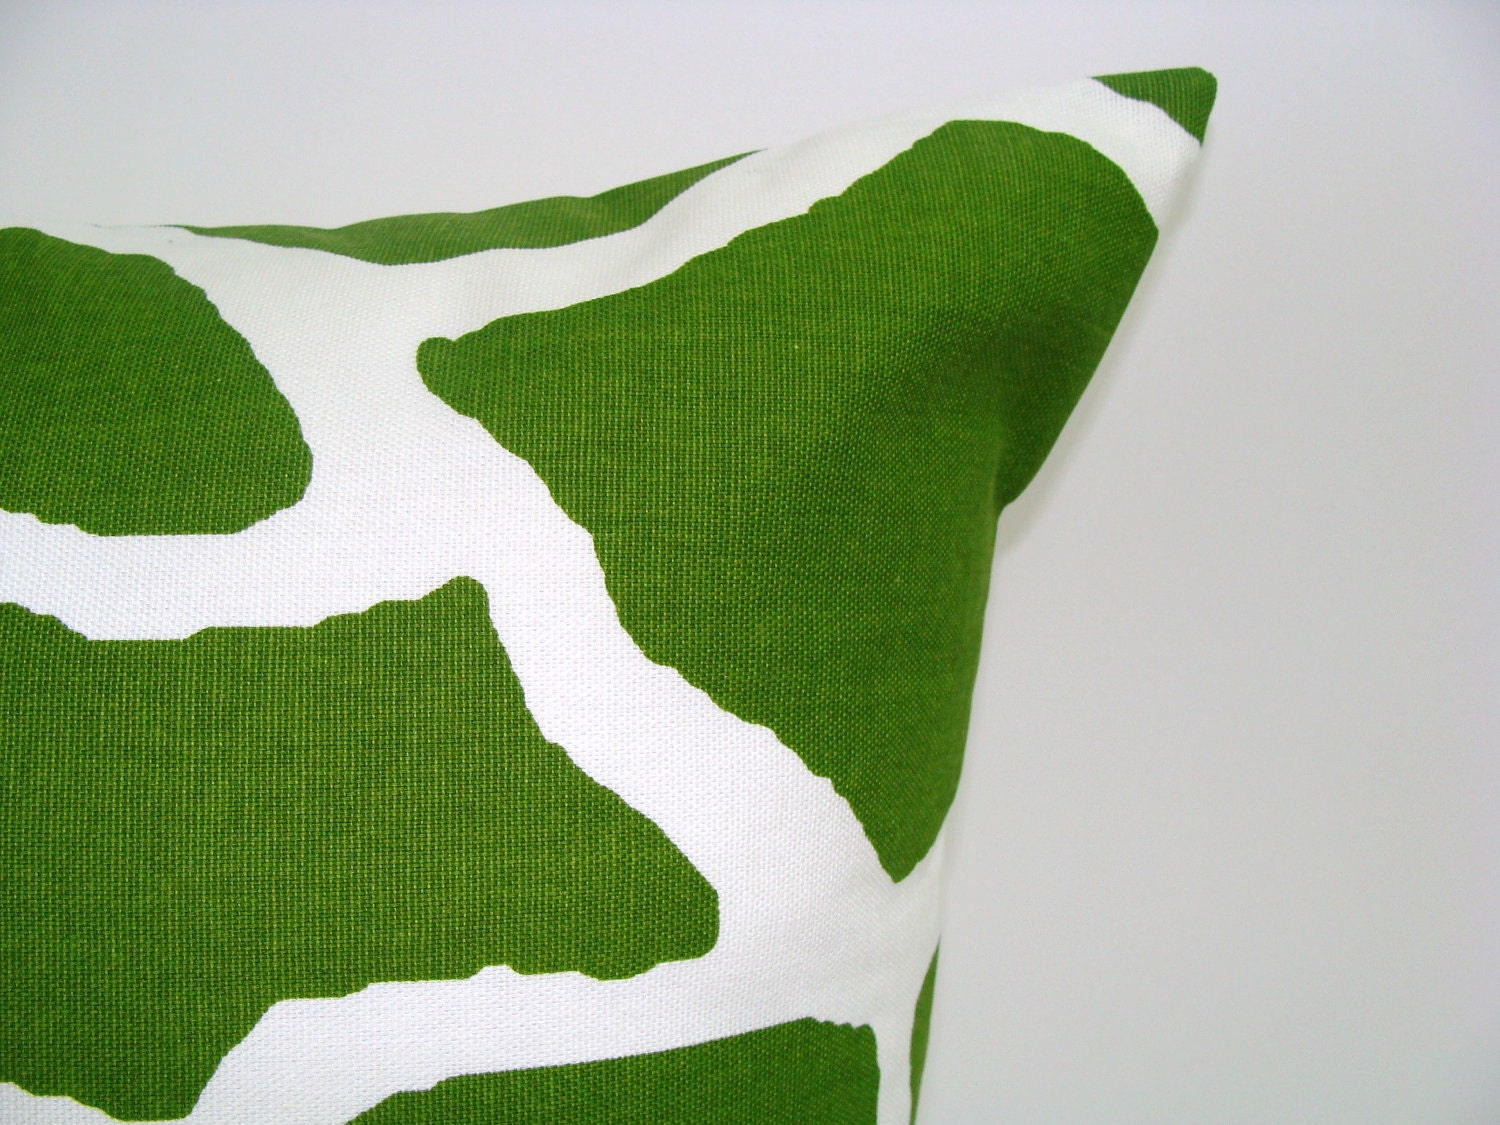 Pillow Sale Green Pillow 12x16 Or 12x18 Inch Lumbar Pillow